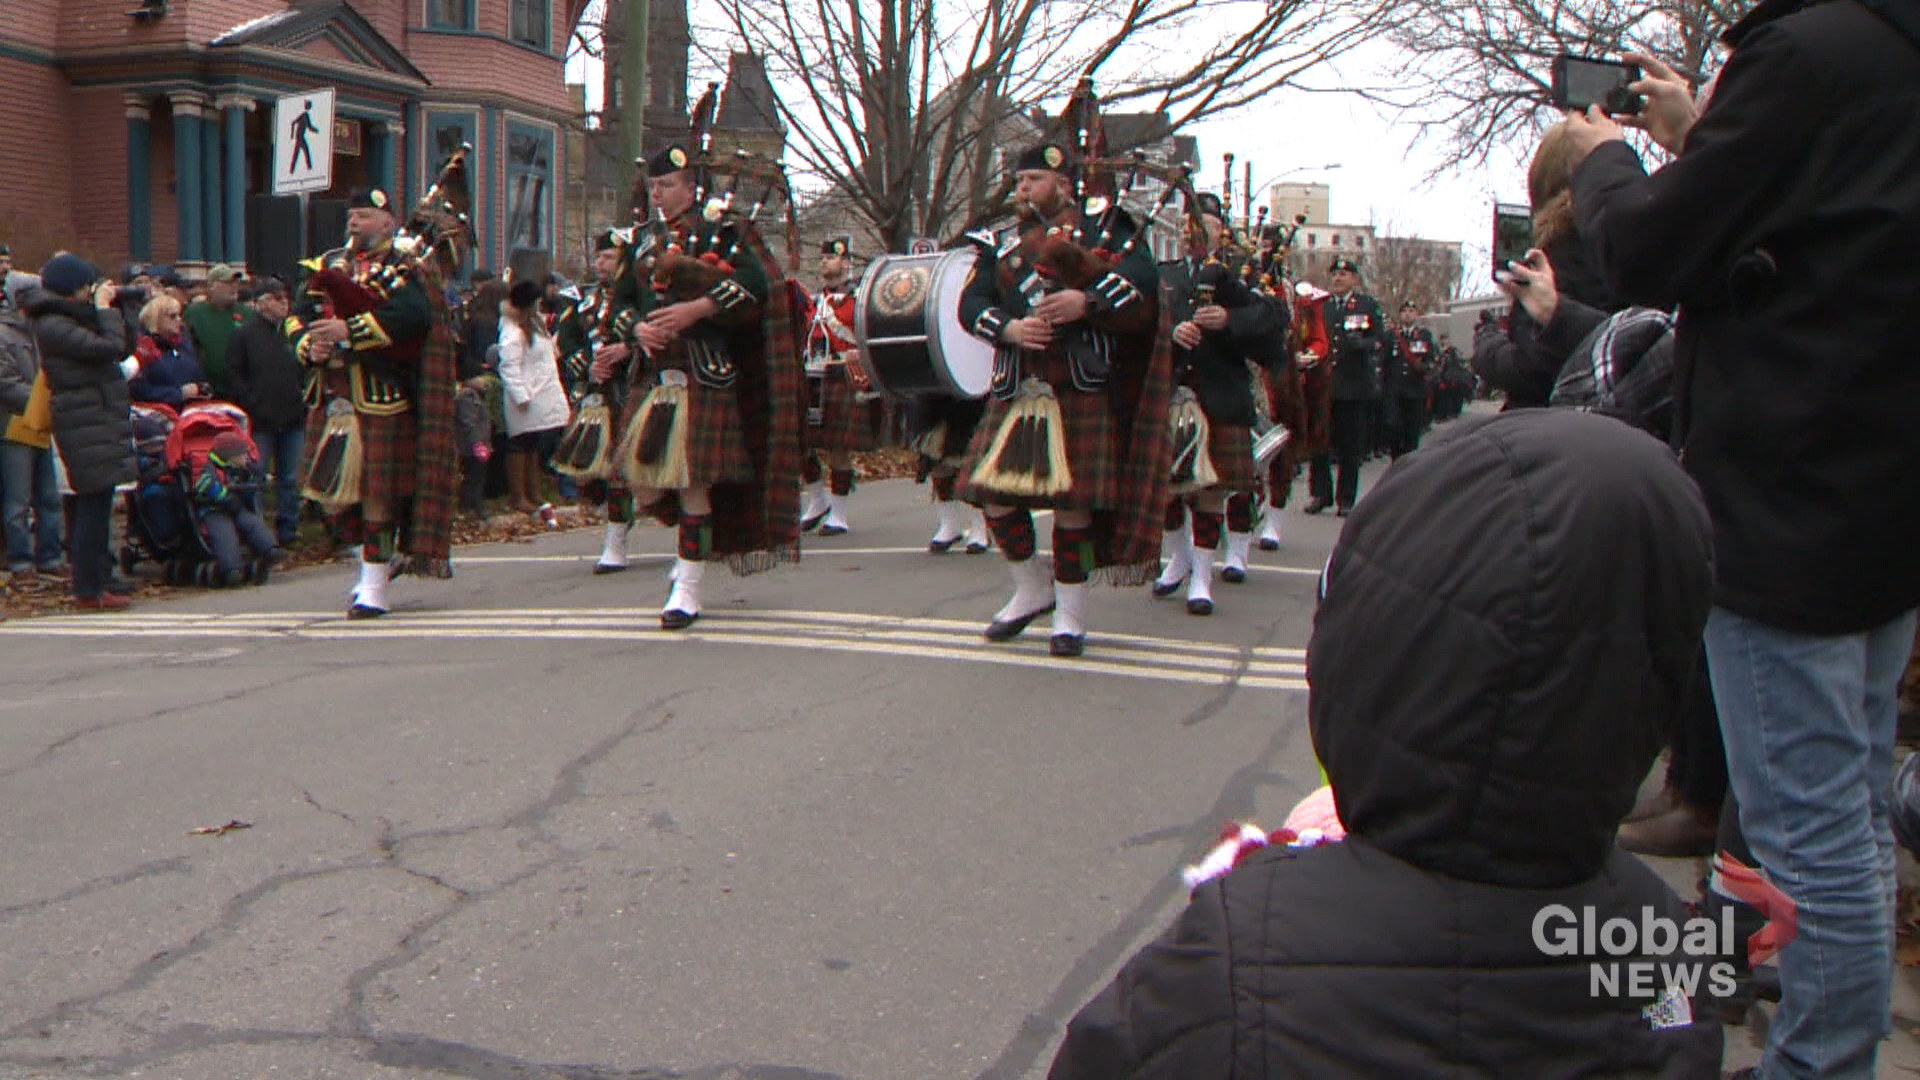 Hundreds of people gathered in Fredericton to mark Remembrance Day